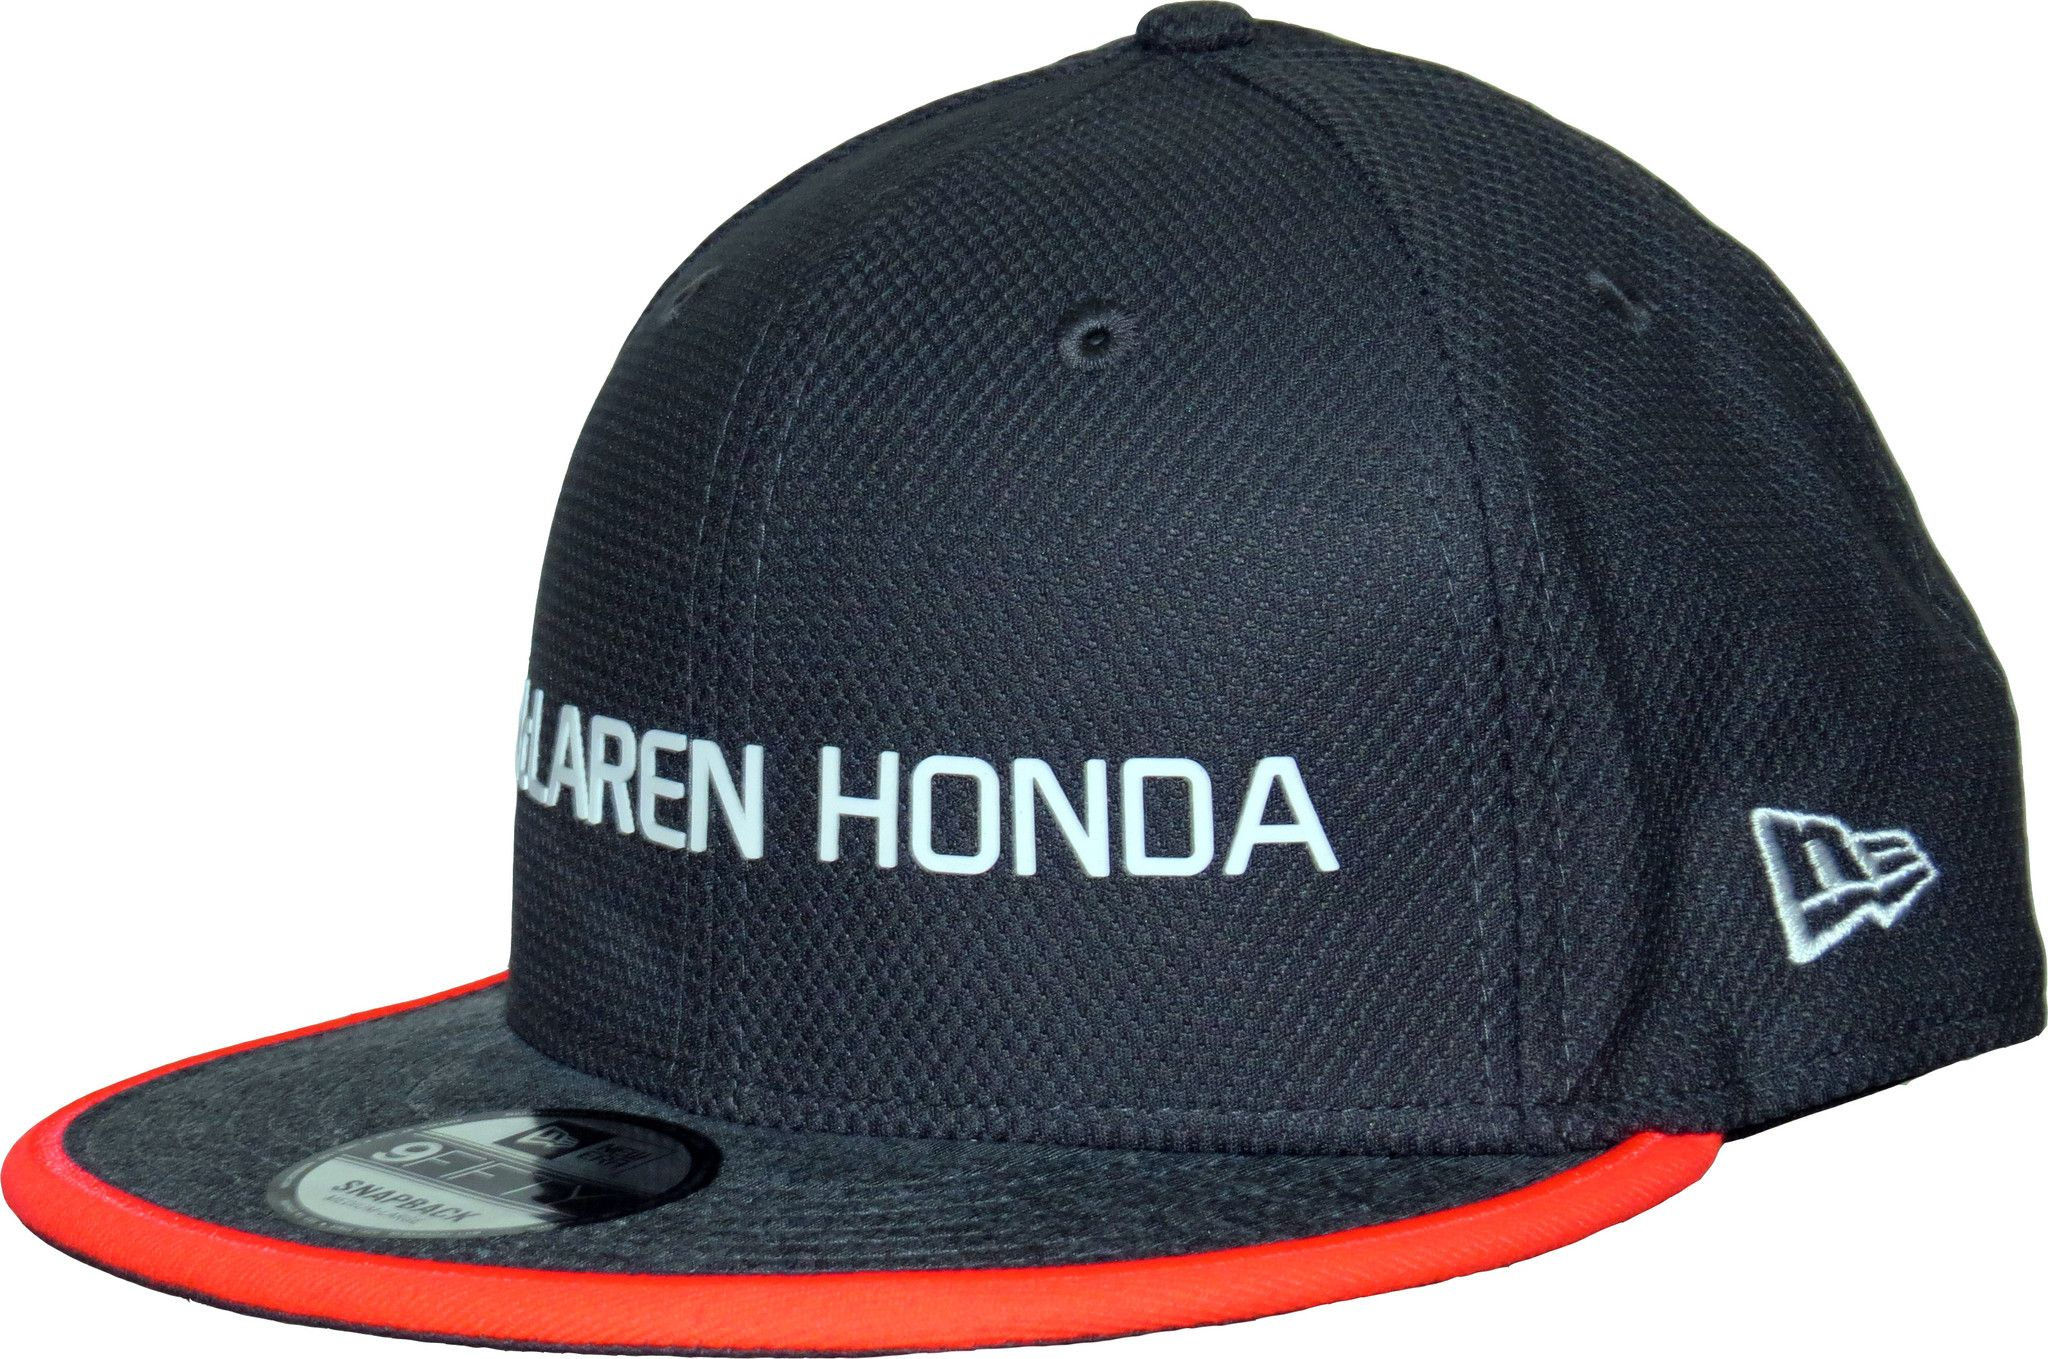 McLaren Honda Official Team New Era 950 Snapback Cap. Find this Pin and  more on Formula 1 ... 867fc81dc732